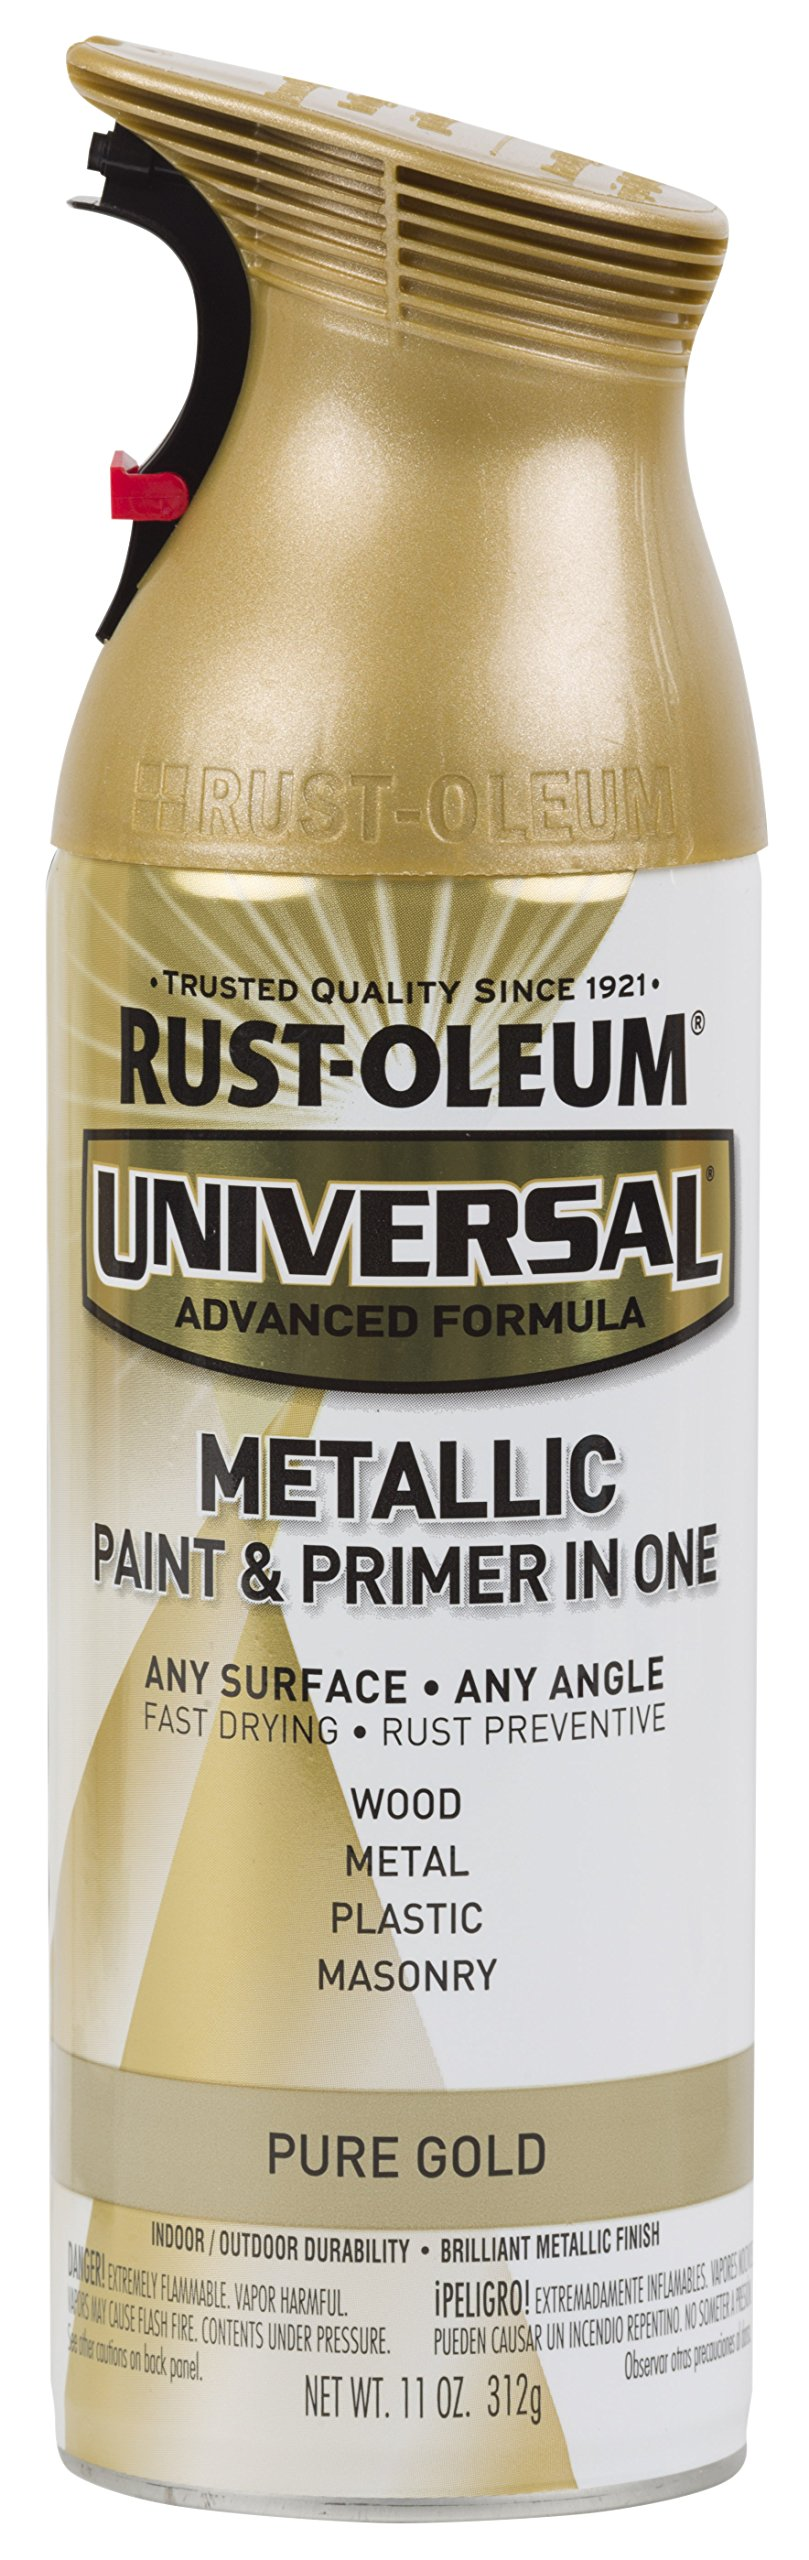 Rust-Oleum 245221-6 PK 245221 Universal All Surface Spray Paint, 11 oz, Metallic Pure, 6 Pack, Each, Champagne Gold Mist